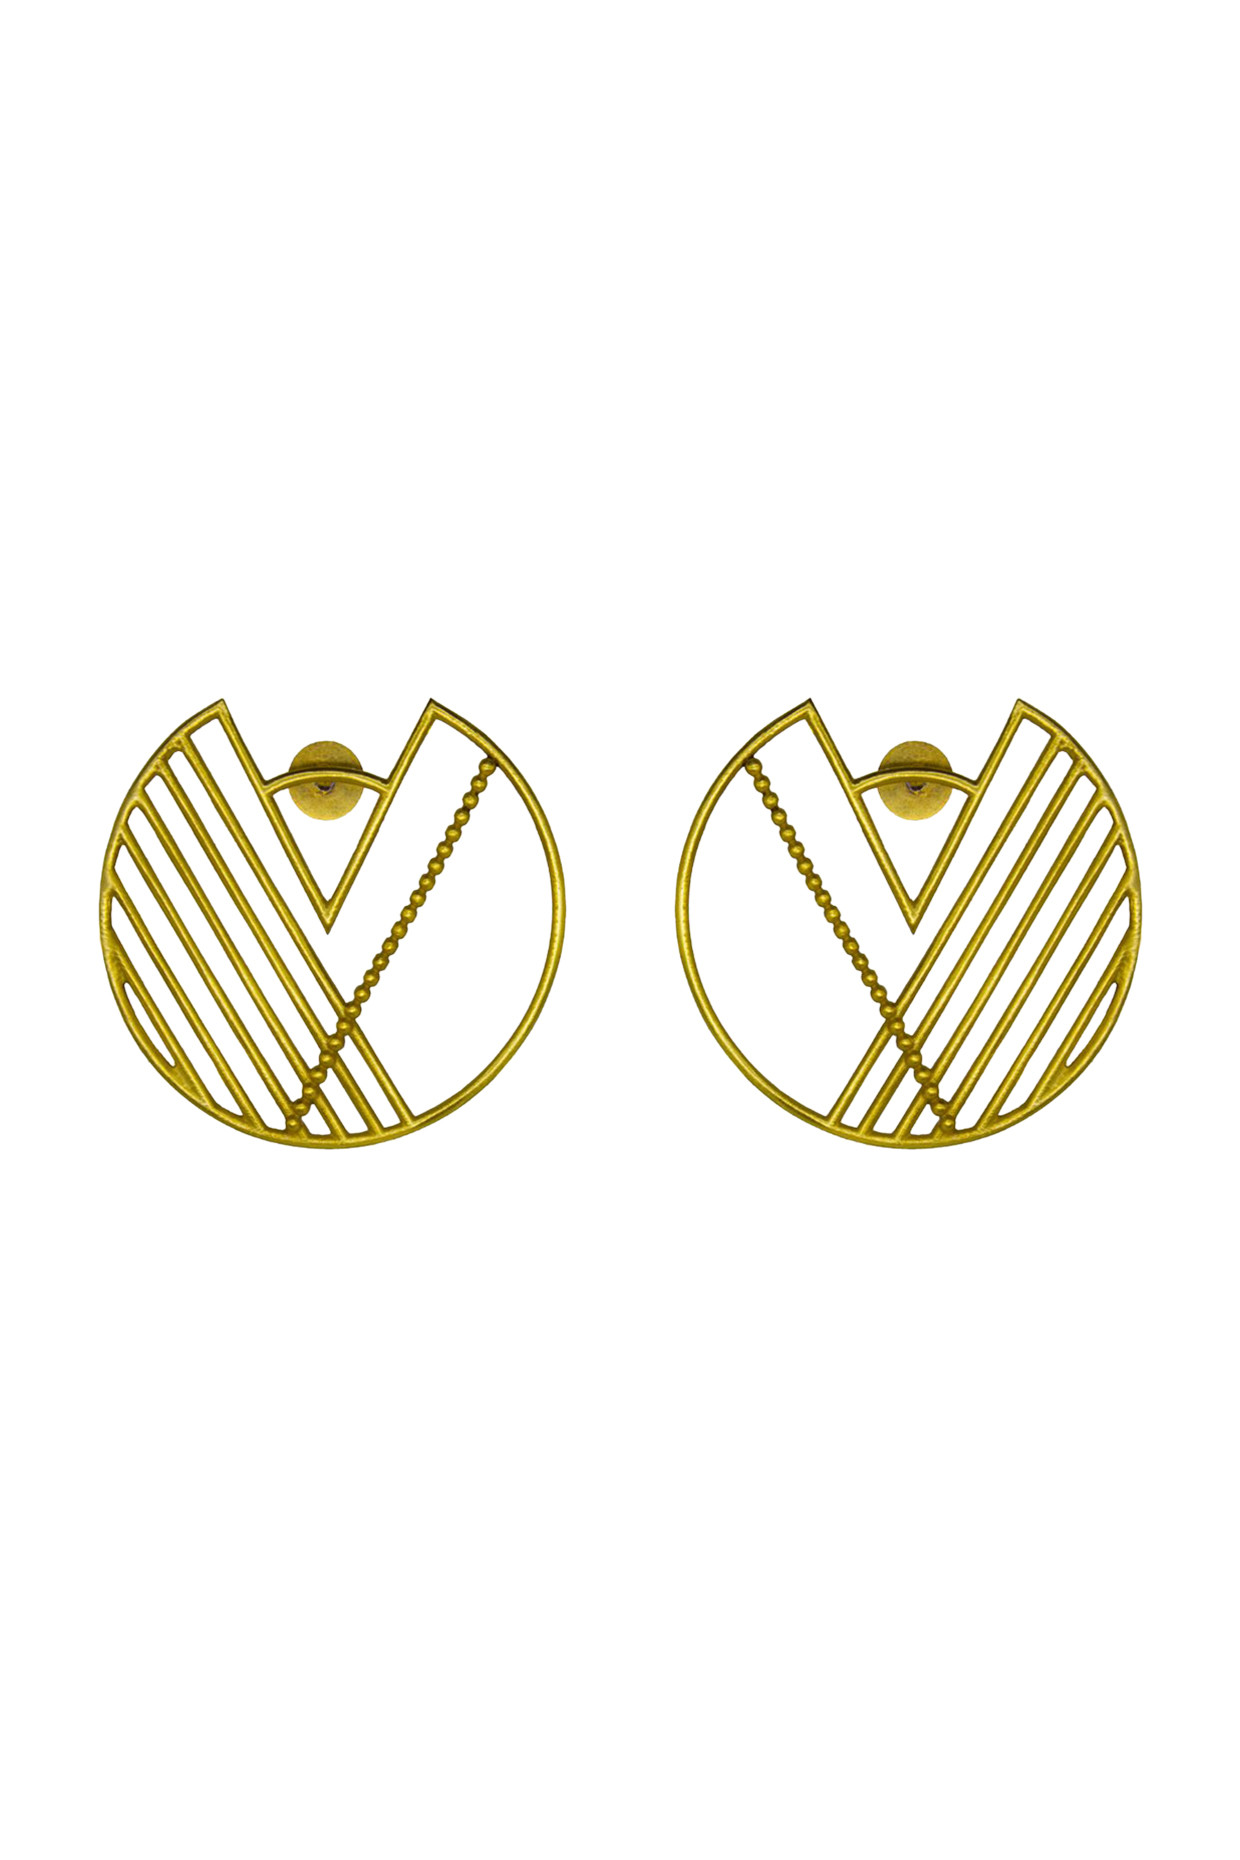 Handcrafted Circle Brass Earrings In Gold by Toorya